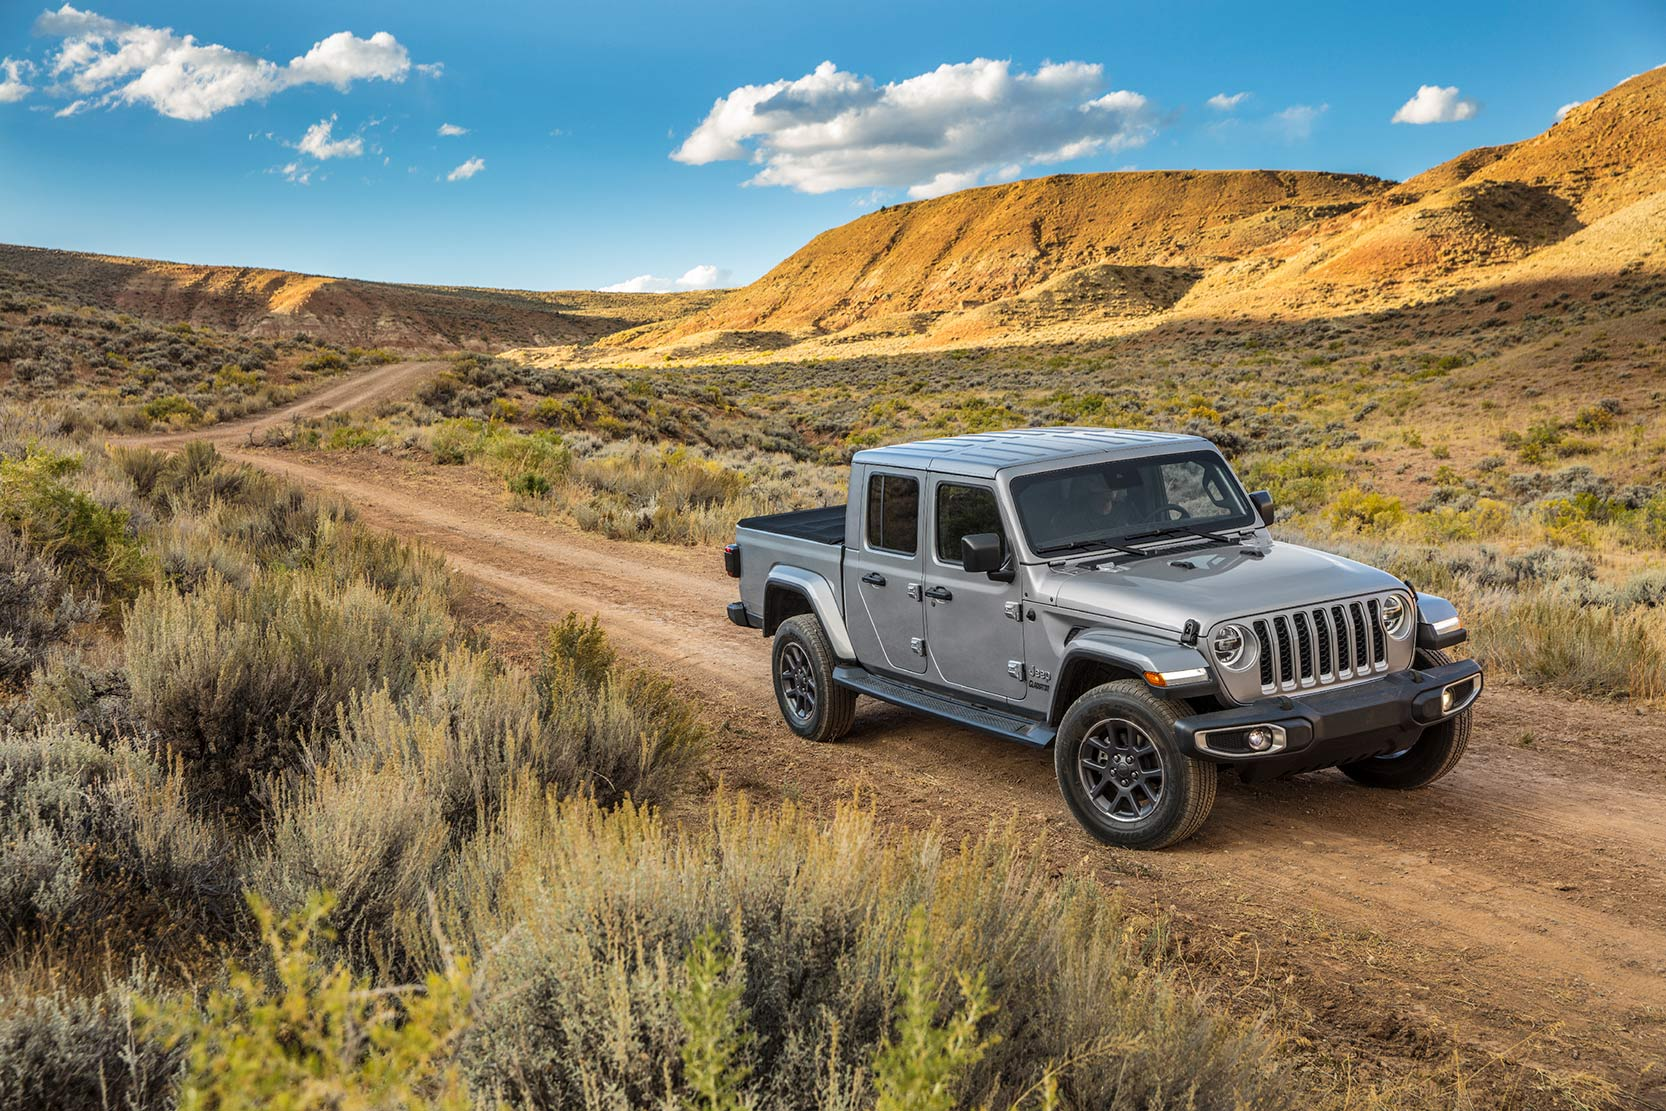 Exterieur_Jeep-Gladiator_71